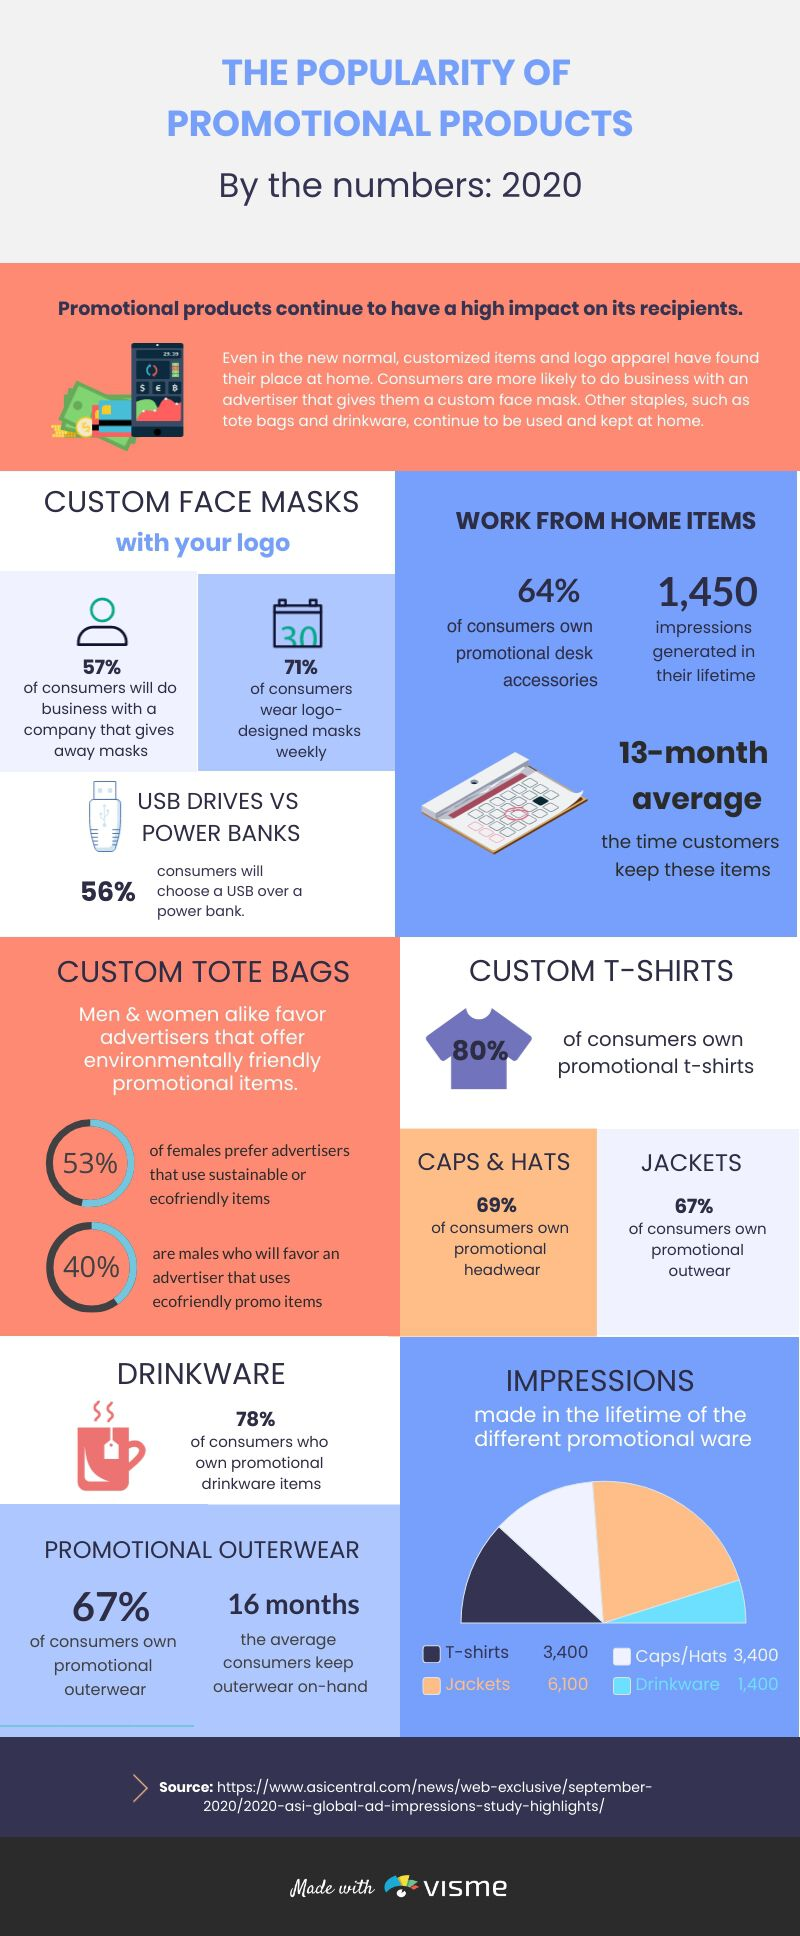 Behind The Popularity of Promotional Products  - UPrinting.com - Infographic